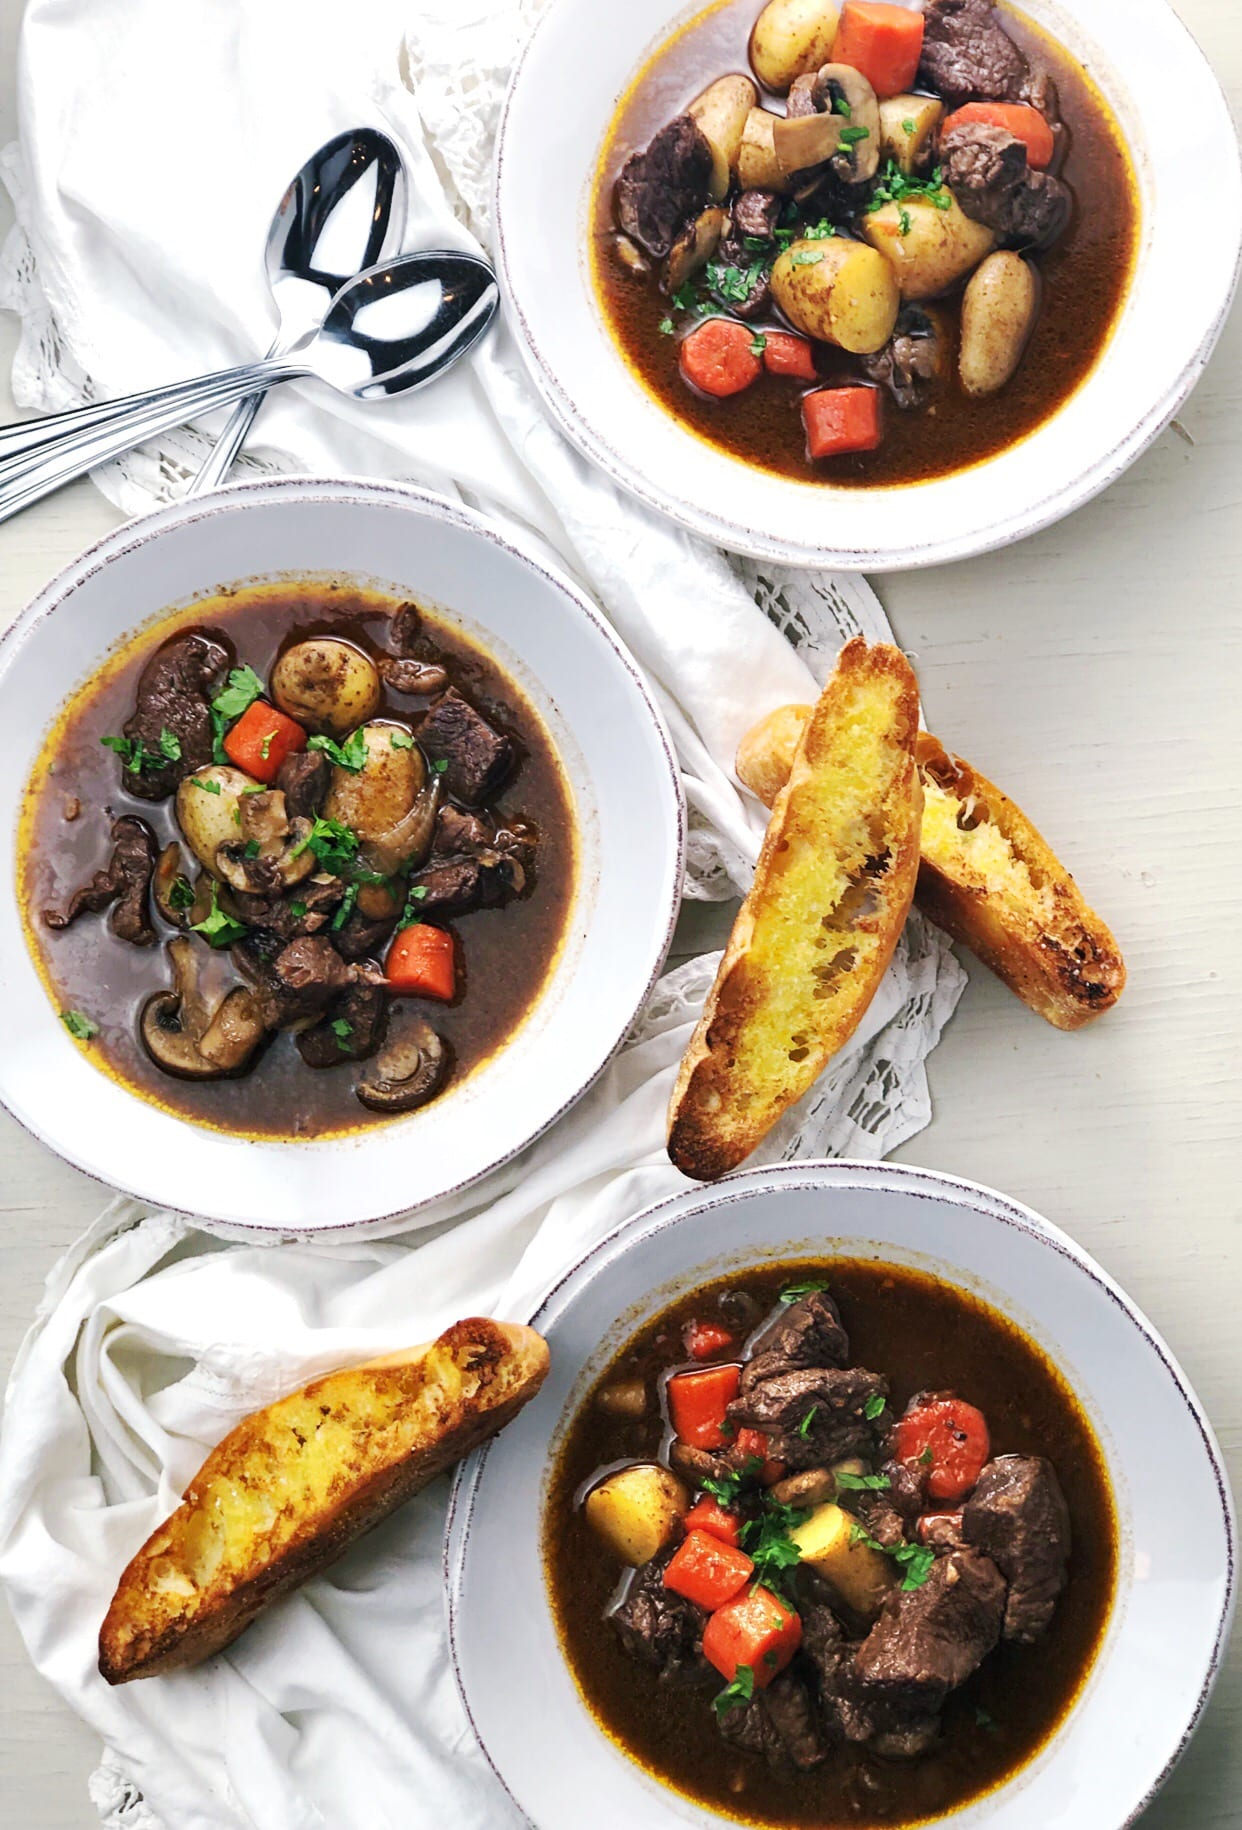 Weekly meal plan 225: Beef Bourguignon at Keeping It Simple